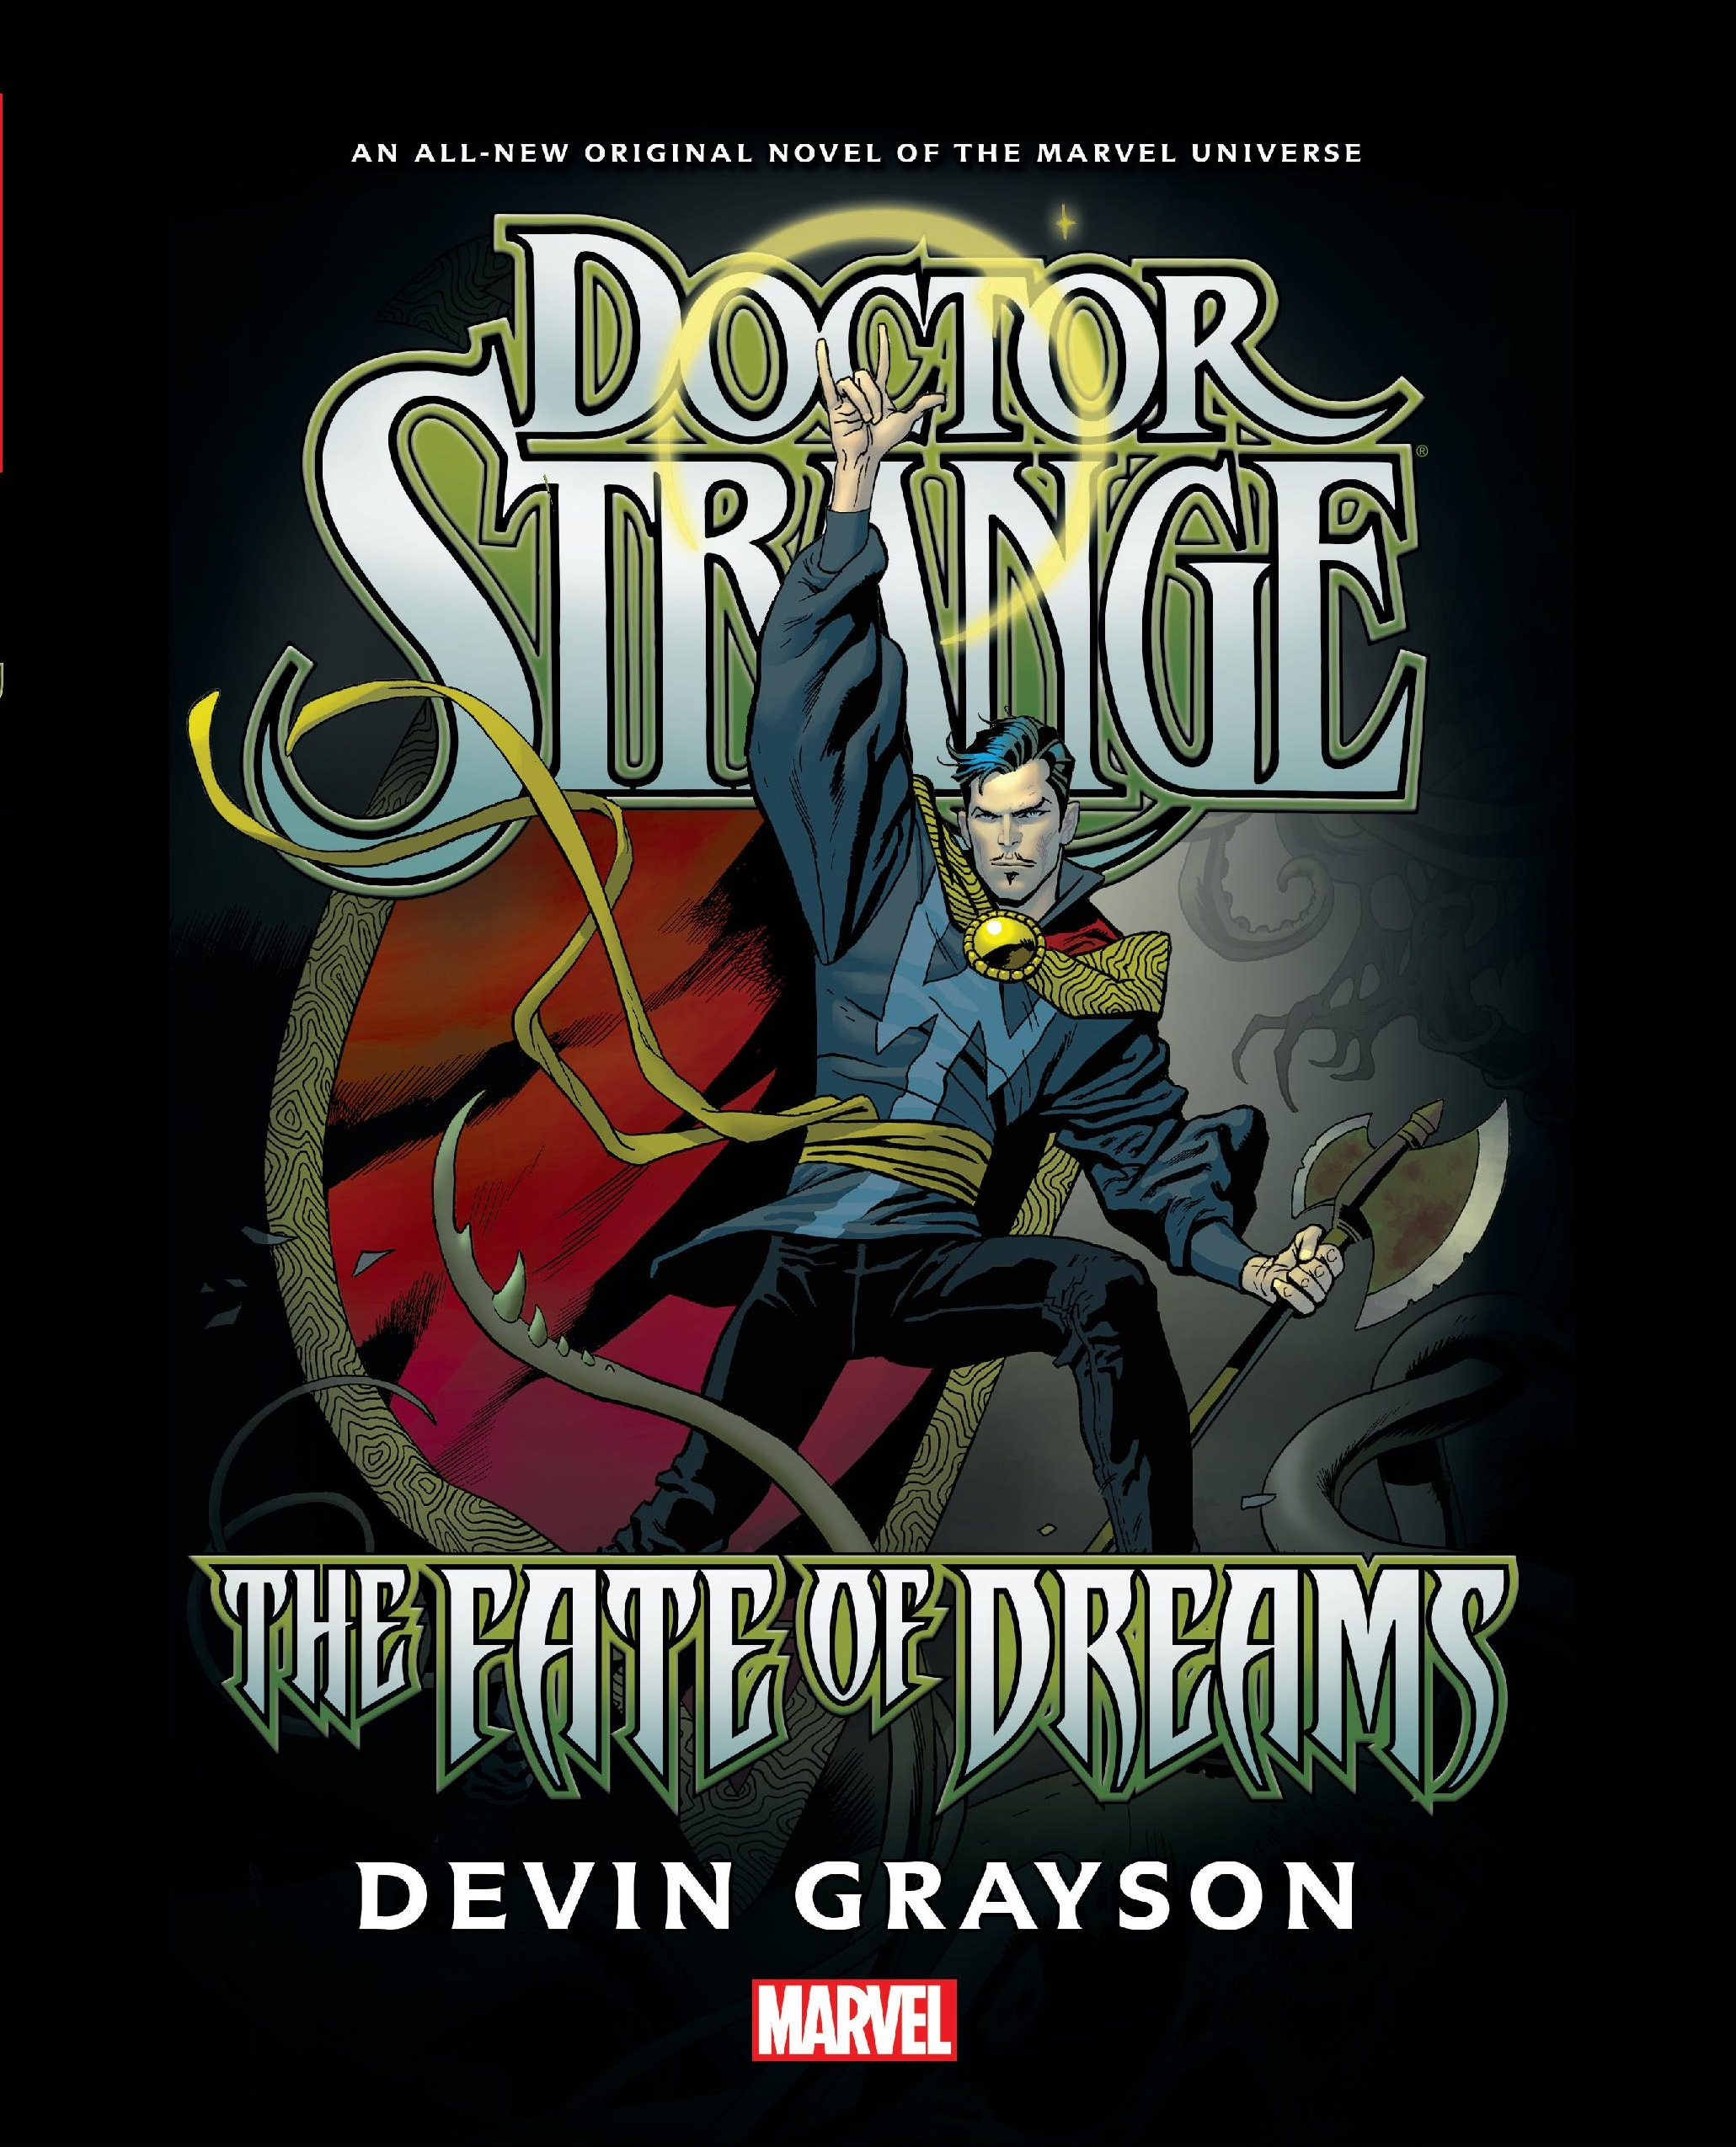 Doctor Strange: The Fate of Dreams Prose Novel (Hardcover)